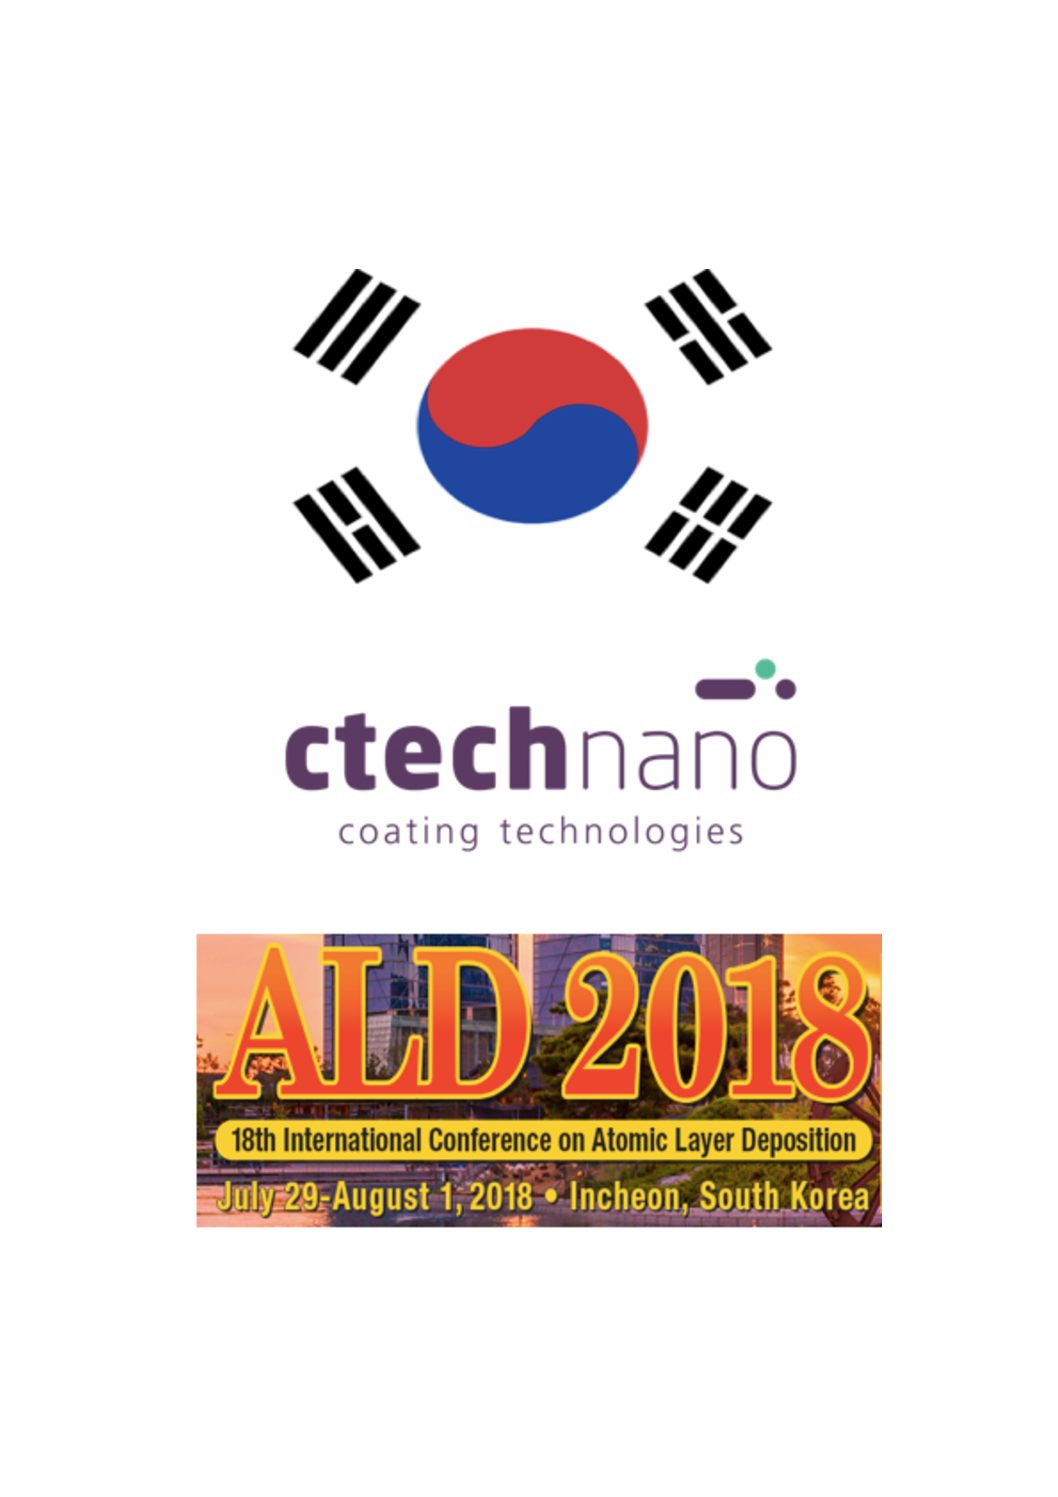 VISIT US IN KOREA ALD 2018 !